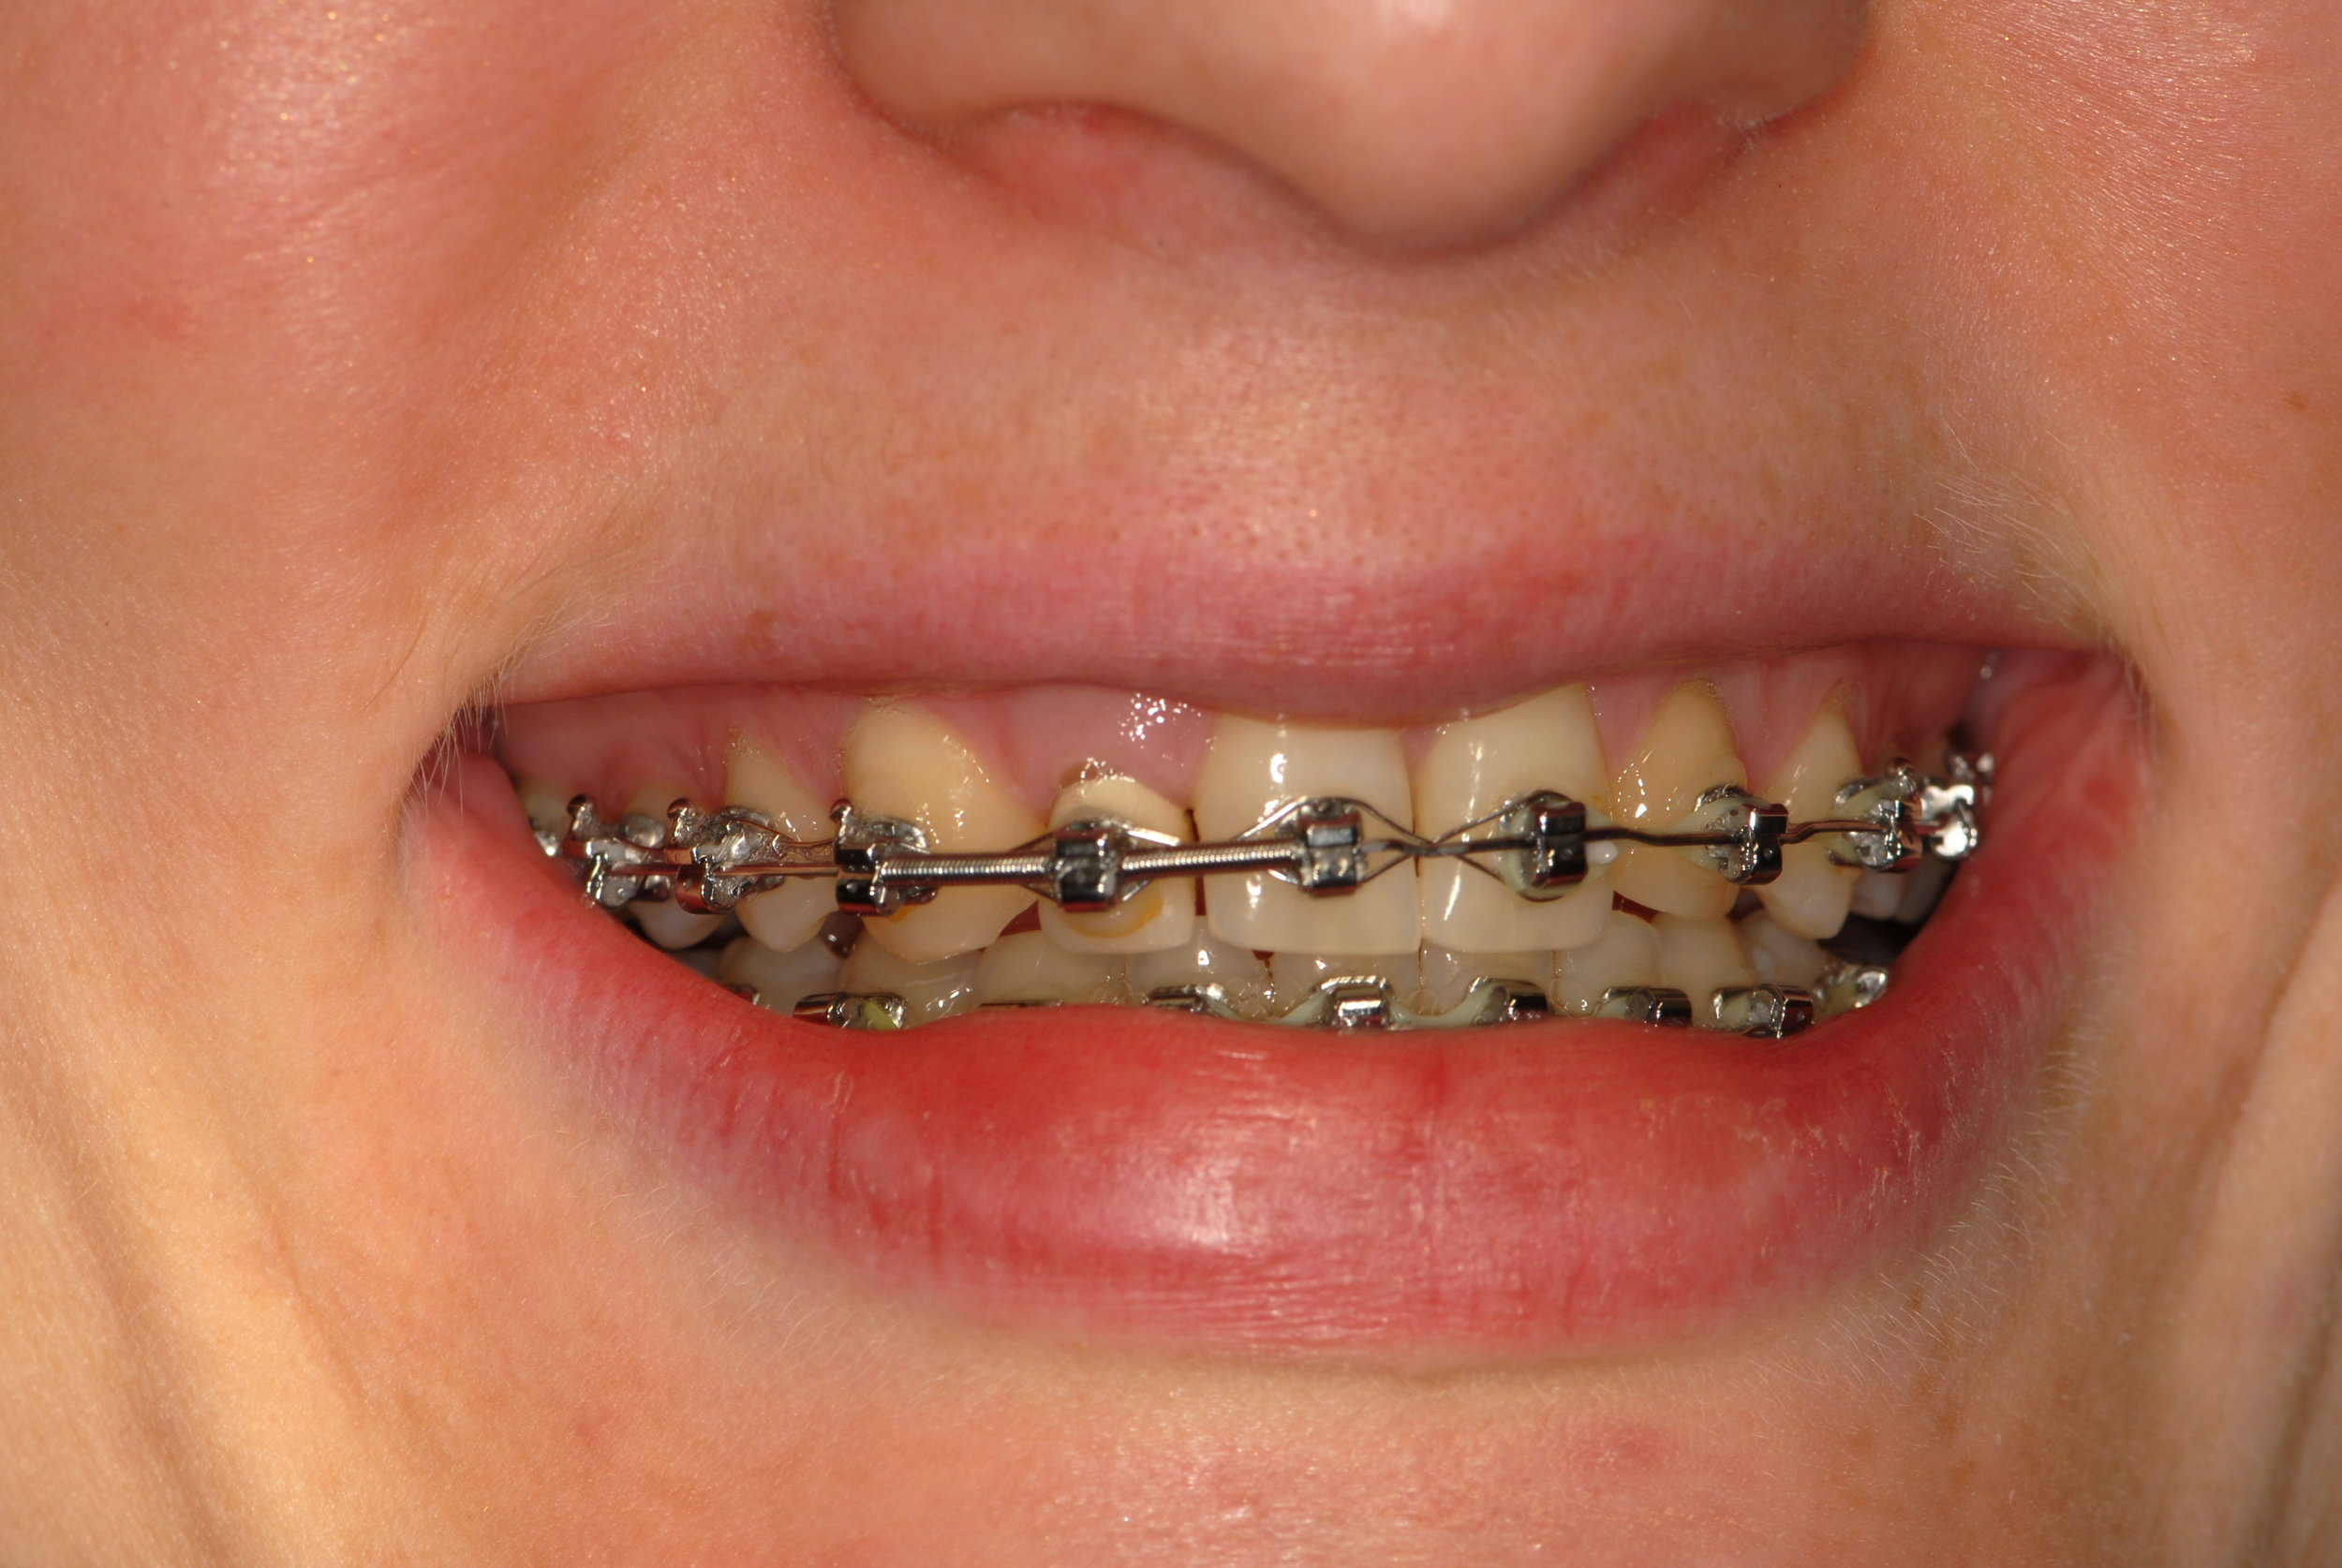 Orthodontics for implant positioning